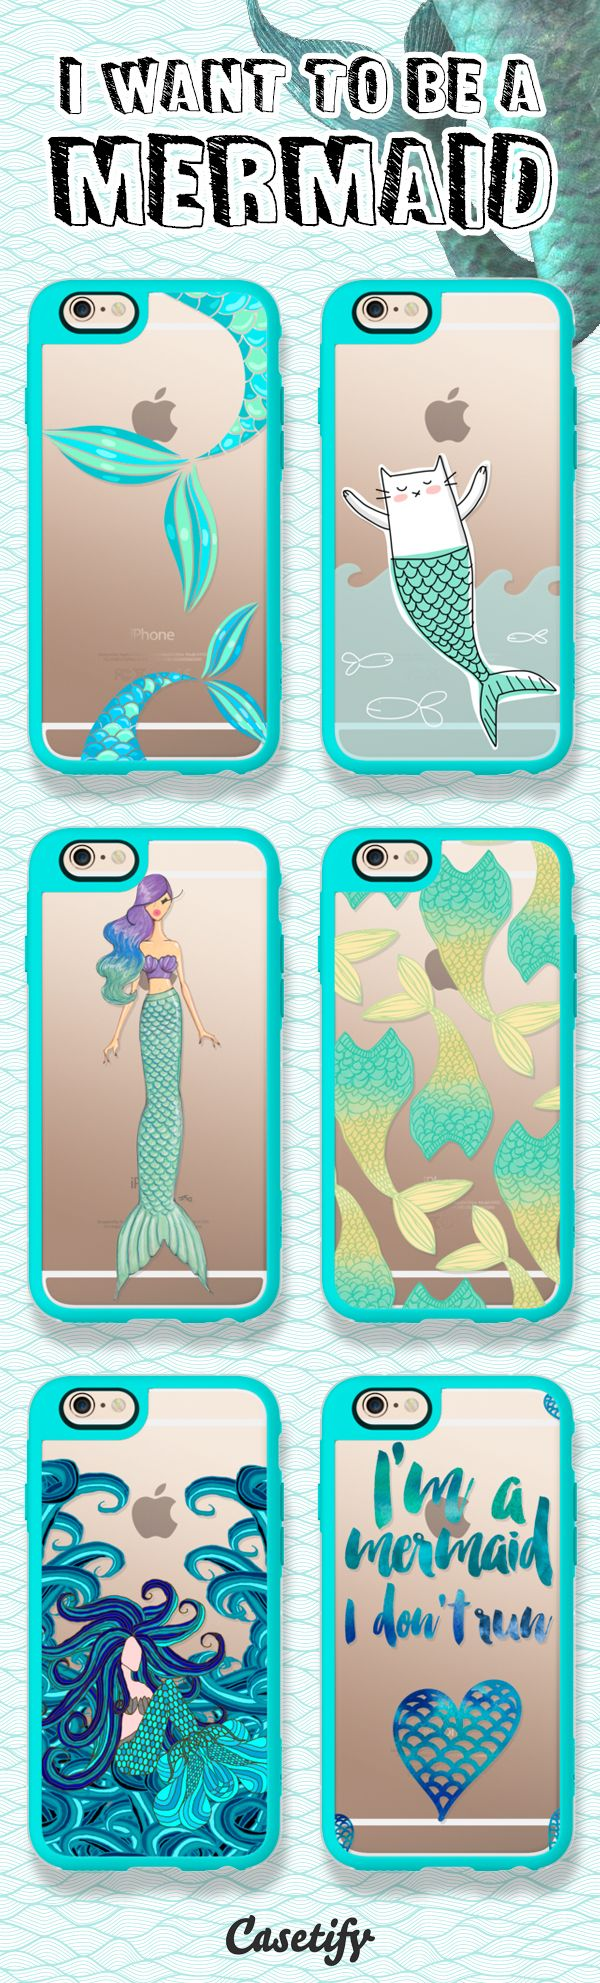 Every little girl dreams of being a mermaid. Tap this link to shop the mermaid iphone cases: https://www.casetify.com/artworks/1mf1sJpm60 | @casetify